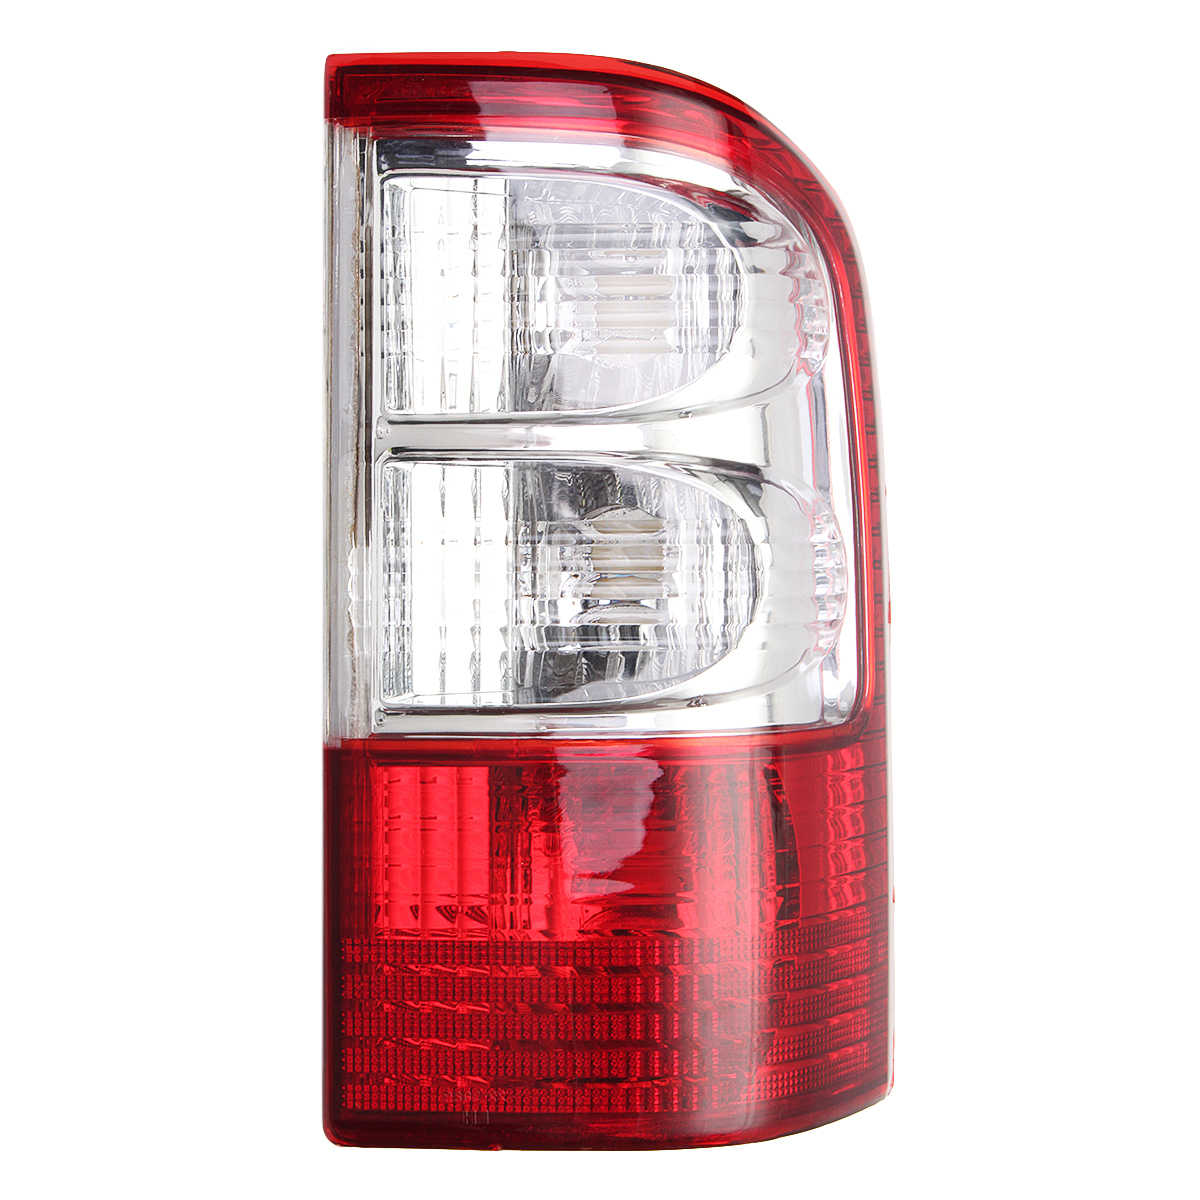 medium resolution of  tail light brake lamp w wire harness for nissan patrol gu series 2 2001 2002